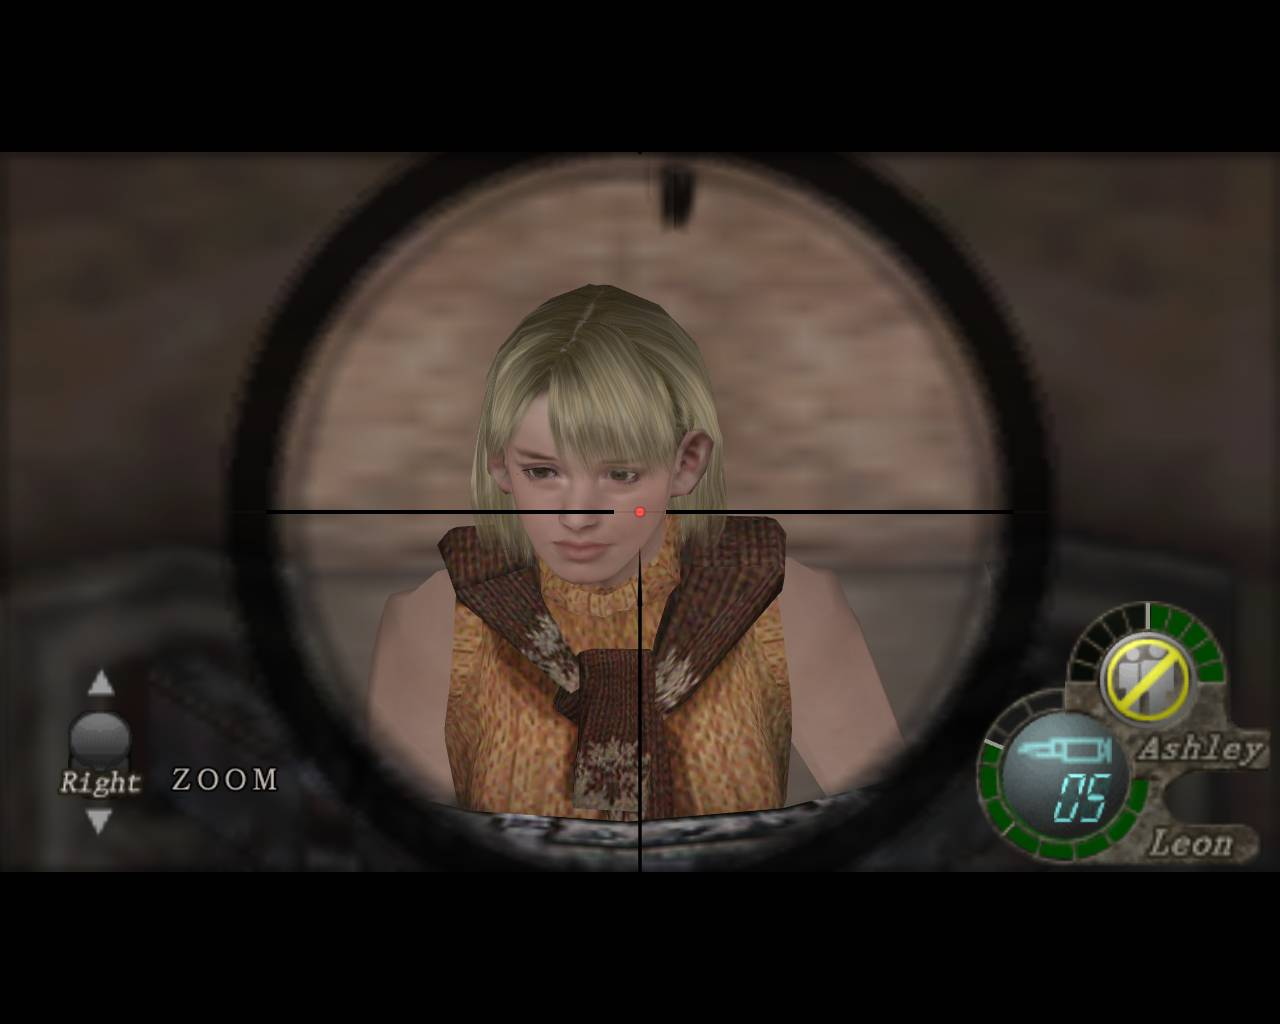 Leon and ashley porn resident evil 4 hentai images